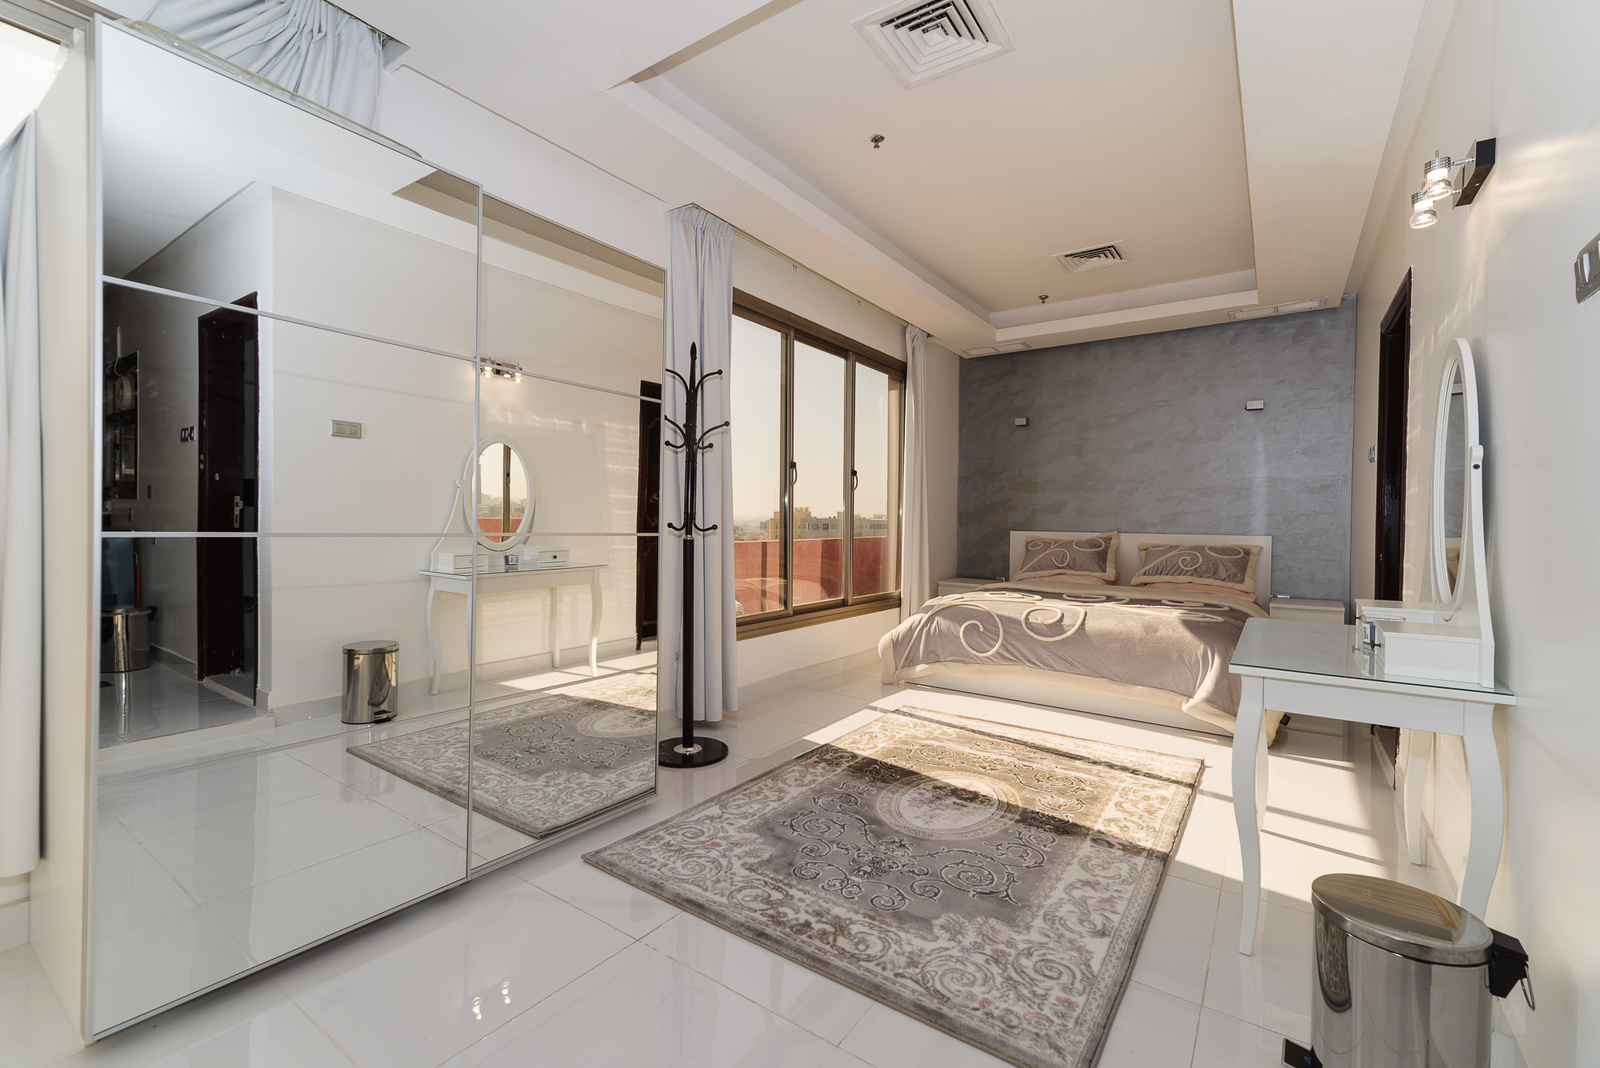 Mangaf – unique, spacious, furnished studio with panoramic views